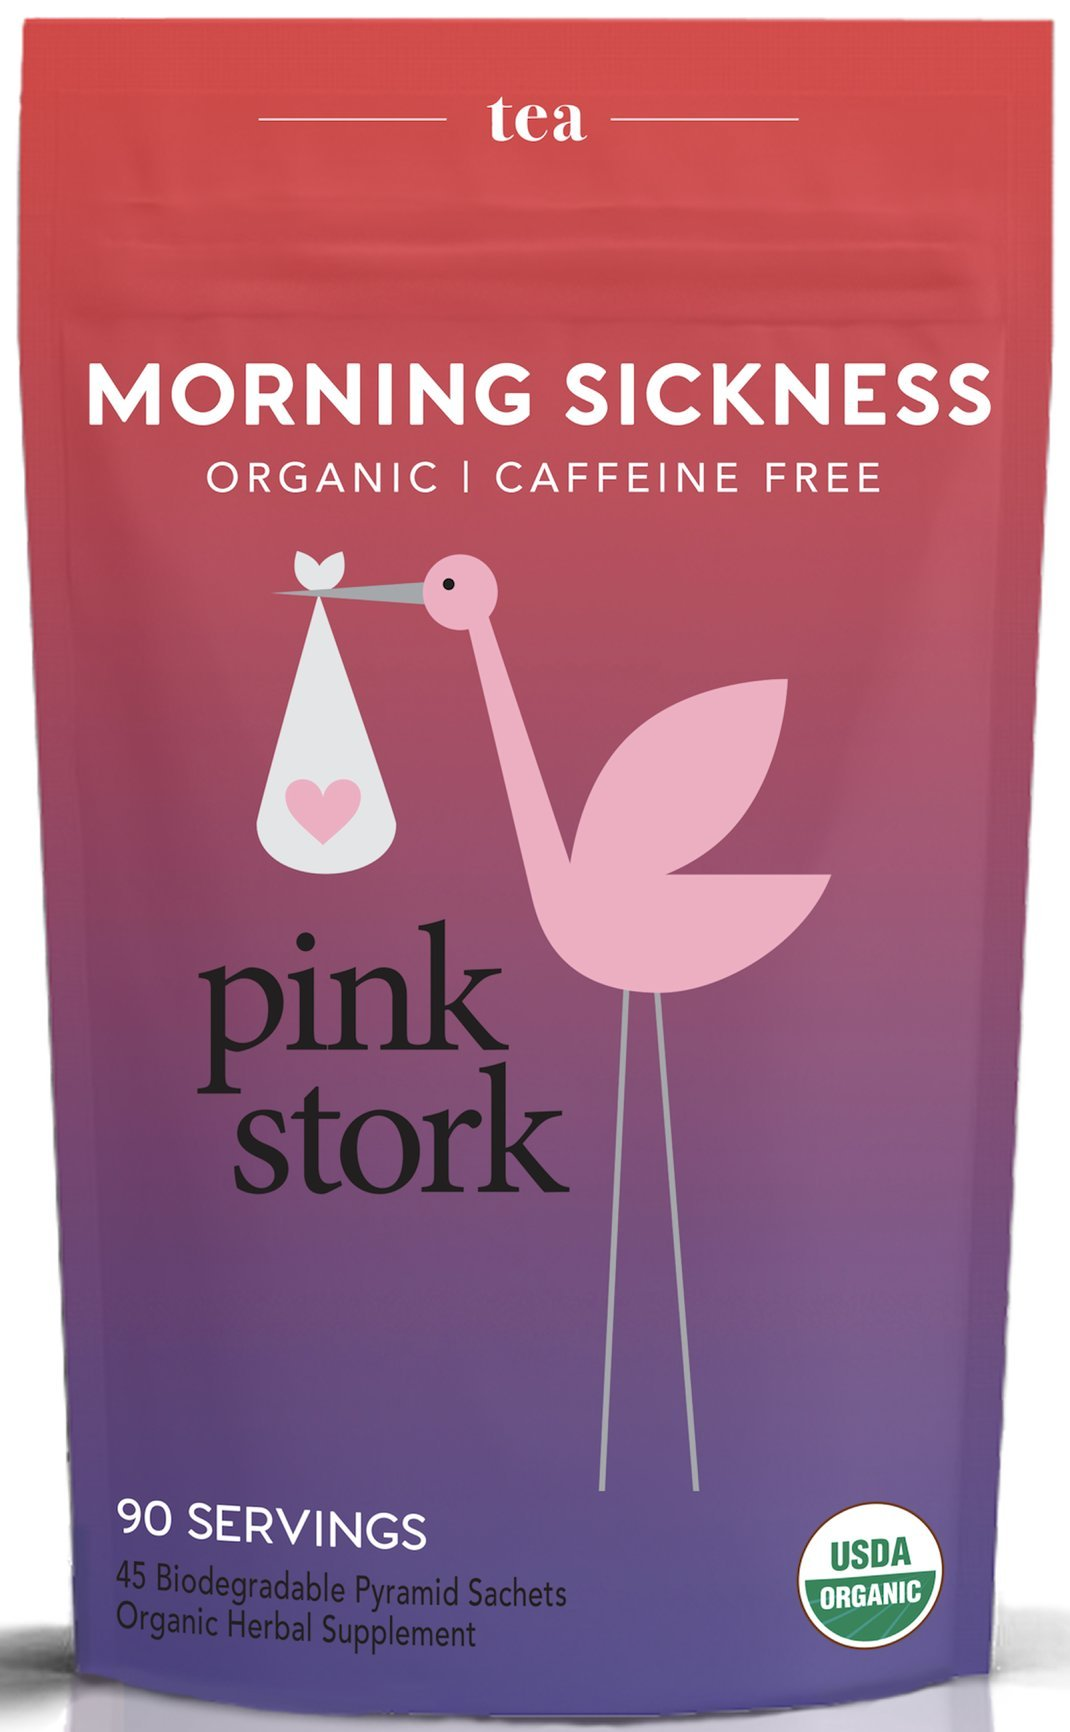 Pink Stork Morning Sickness Tea: Ginger-Peach, USDA Organic Loose Leaf Herbs in Biodegradable Sachets, Morning Sickness, Nausea, Cramps, Indigestion Relief -90 Cups, Caffeine Free